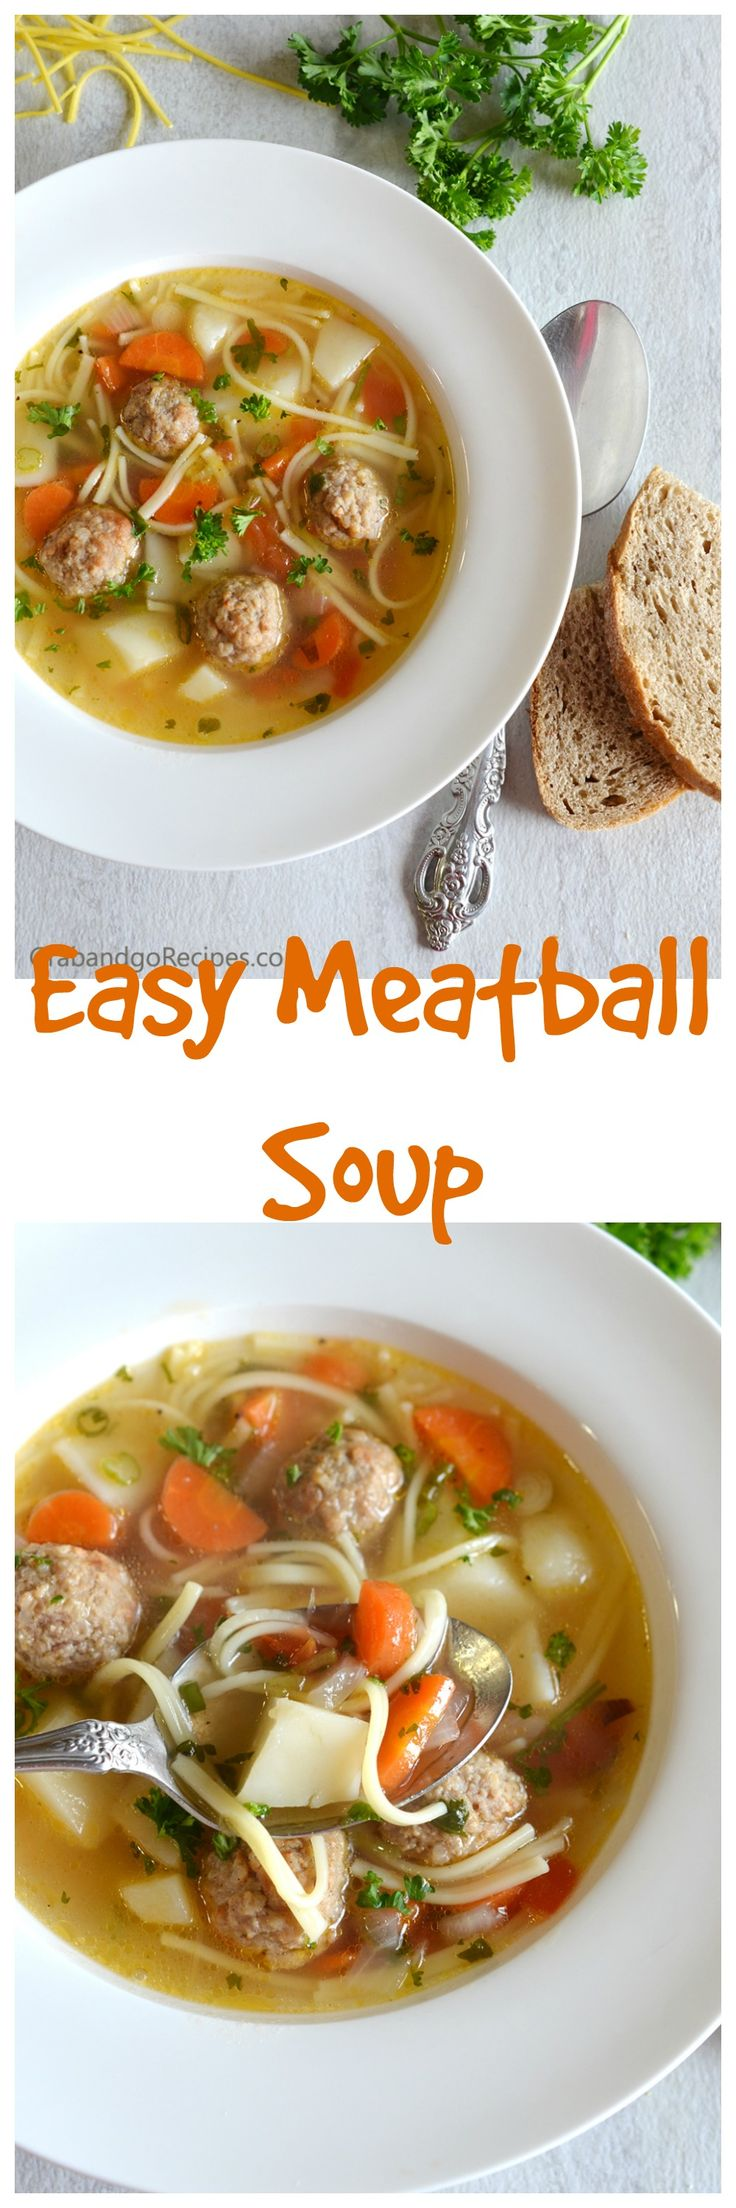 This Easy Weeknight Meatball Soup is a super quick and yet delicious. It turned out so yummy that became one of my favorite soups and yes I figured I'd better share the recipe.